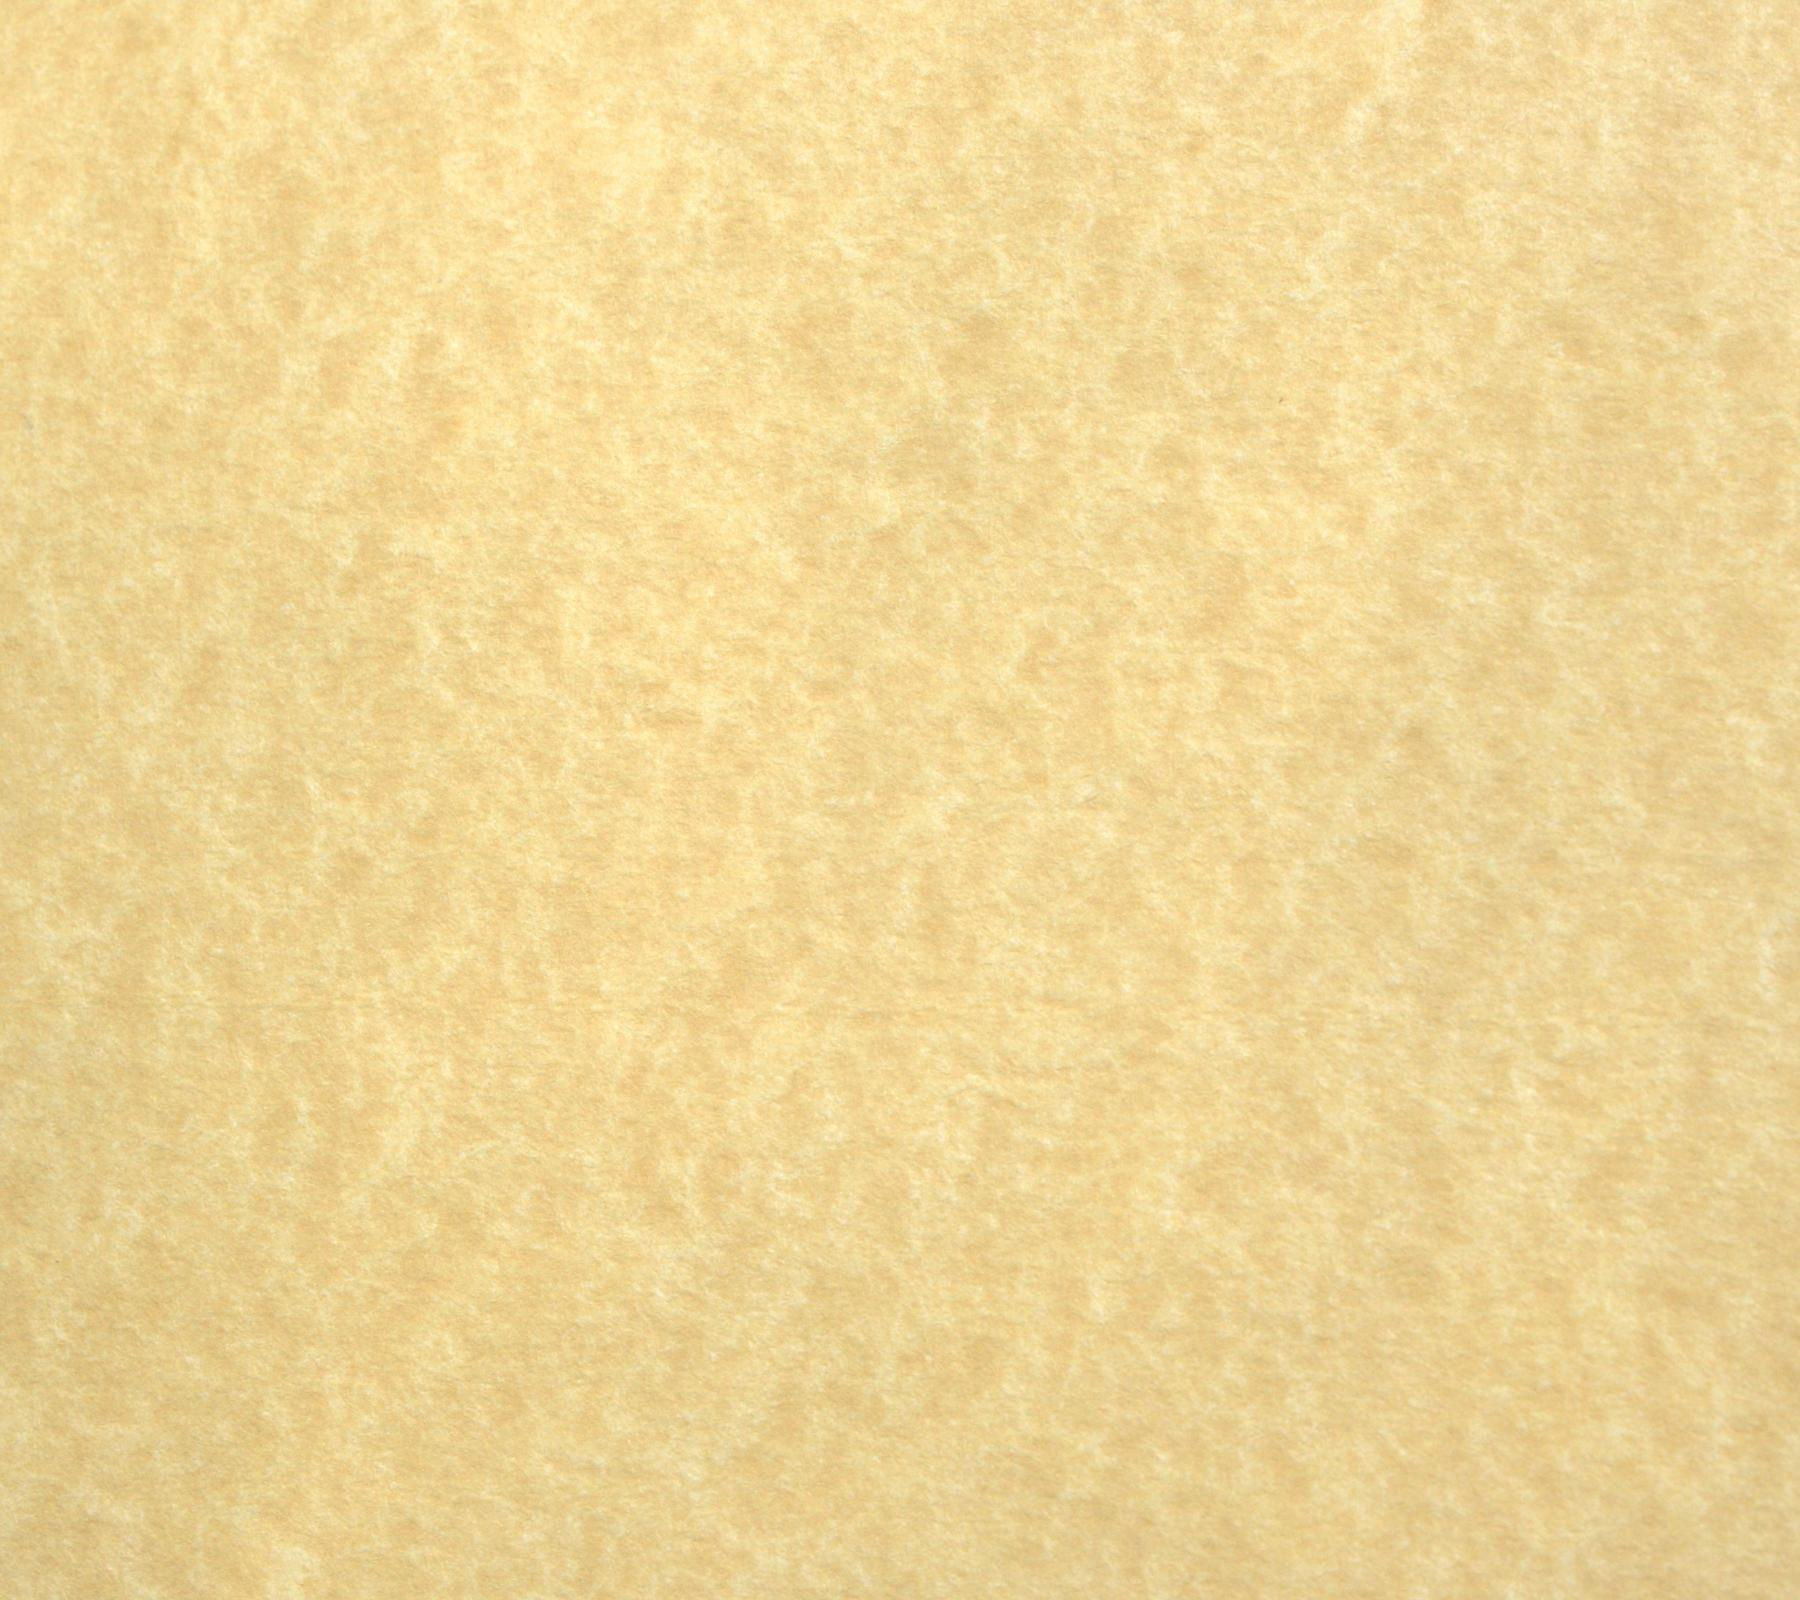 Free Parchment Paper Background 1800x1600 Background   Twitter